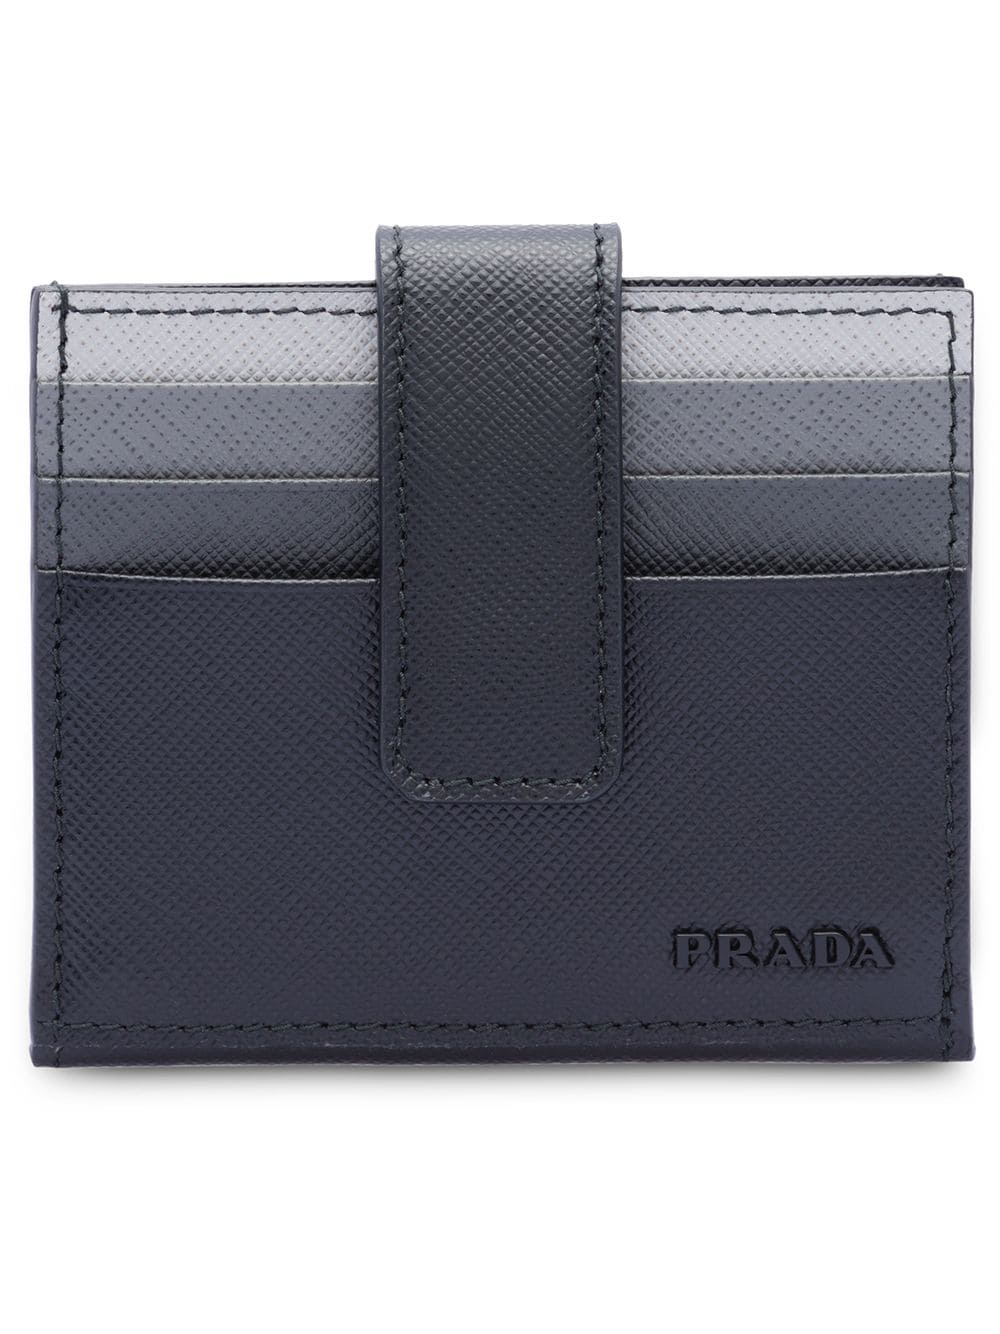 a341ae745e89 Prada Saffiano Leather Card Holder - Black | ModeSens